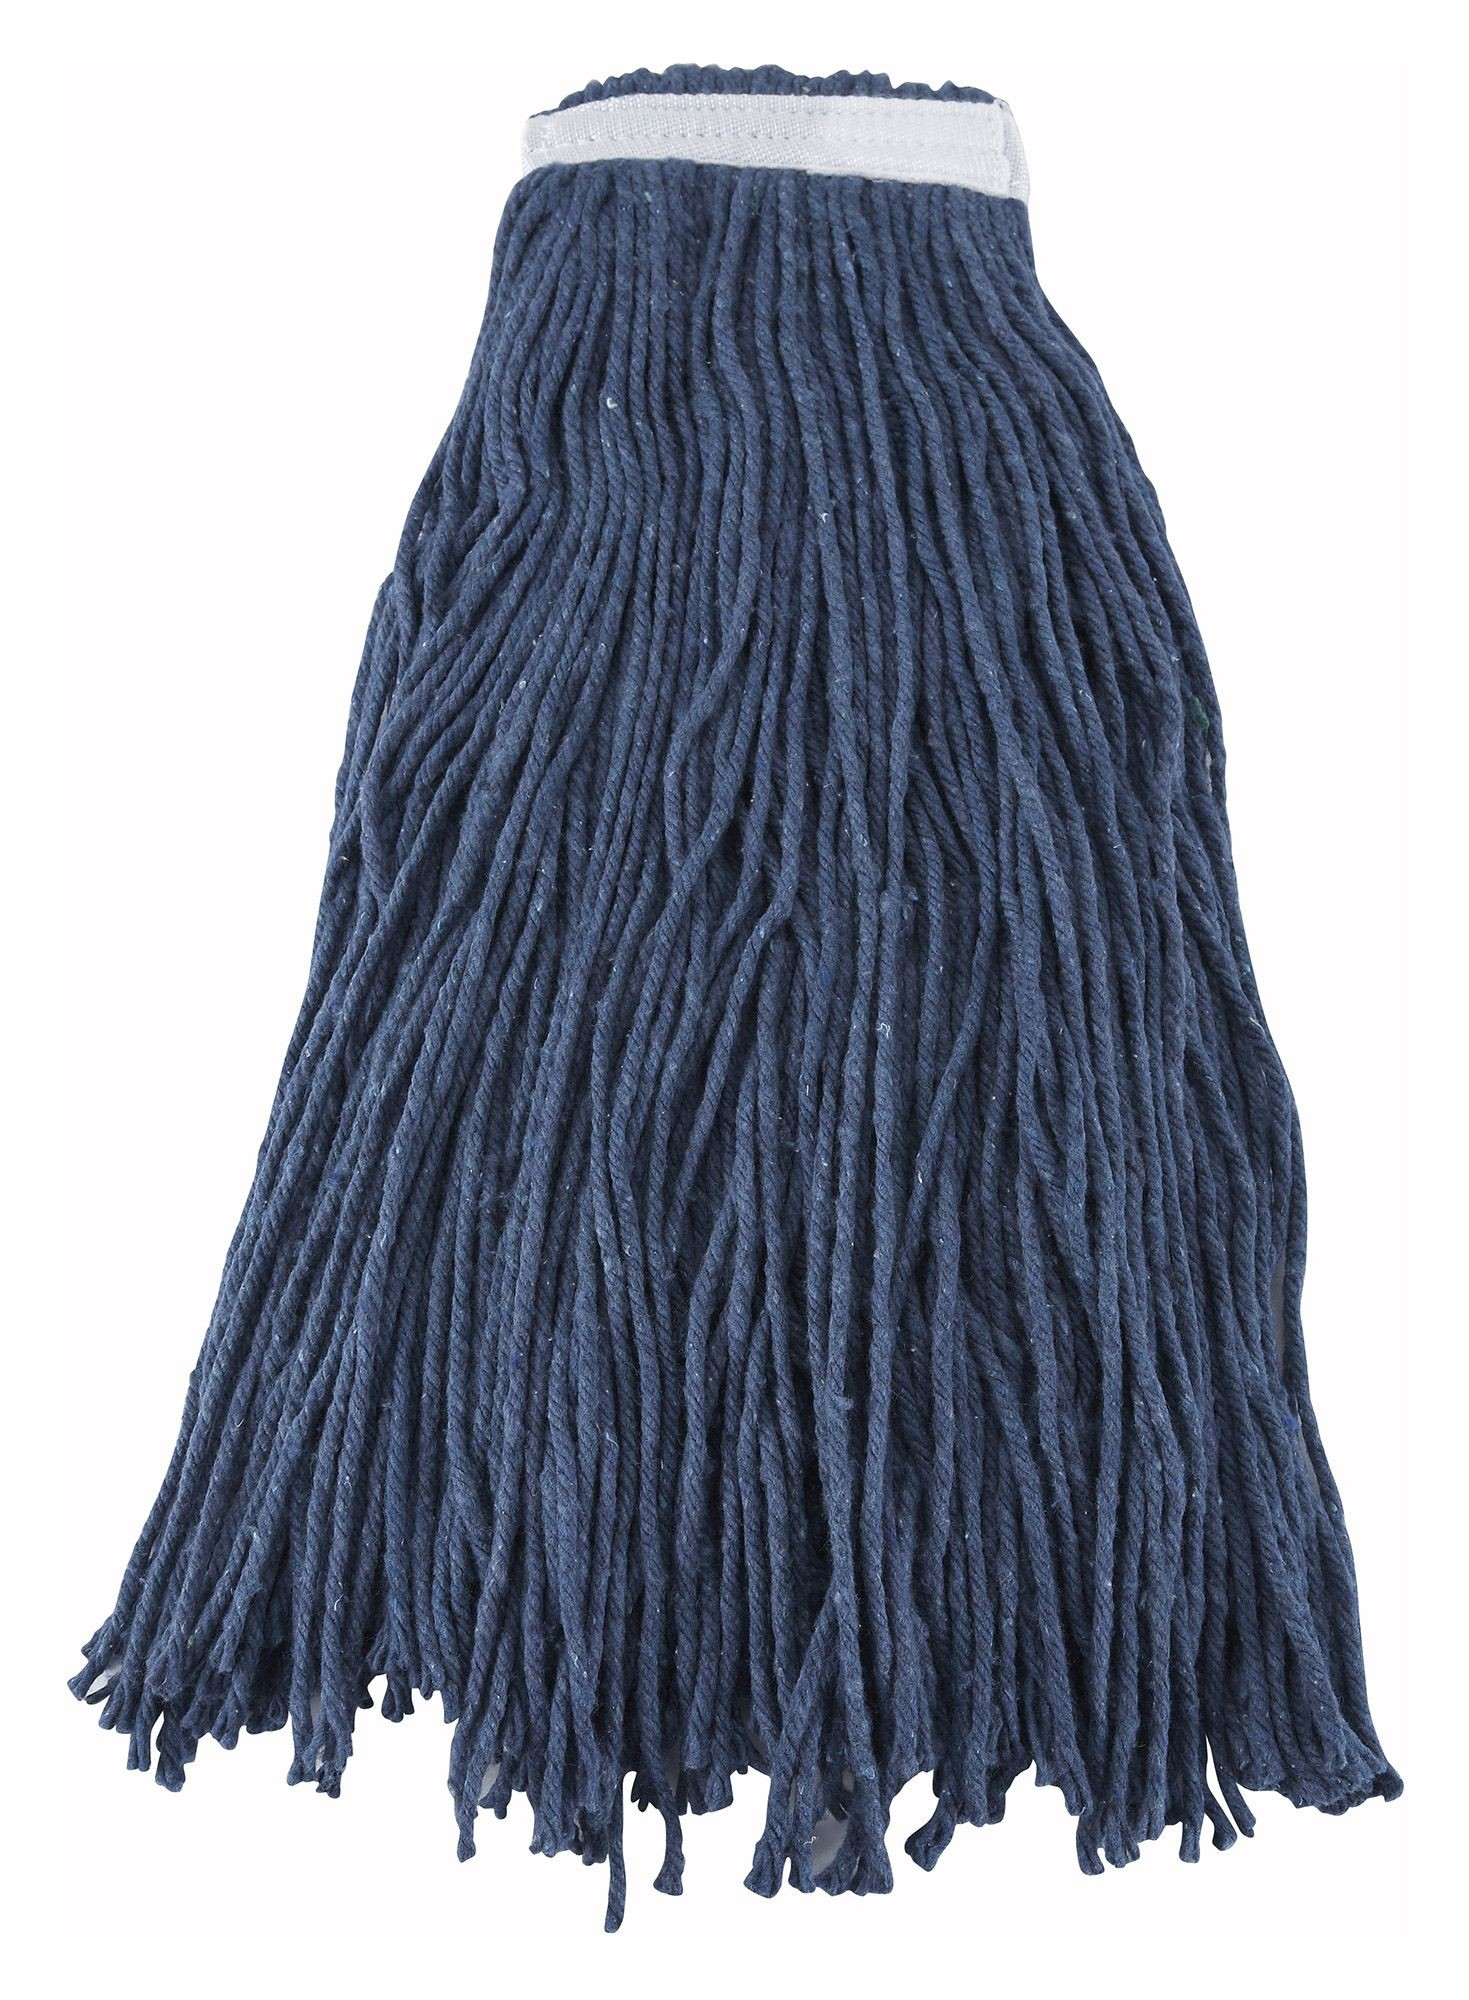 Blue Yarn Mop Head, Cut Head 800g, 32 oz.